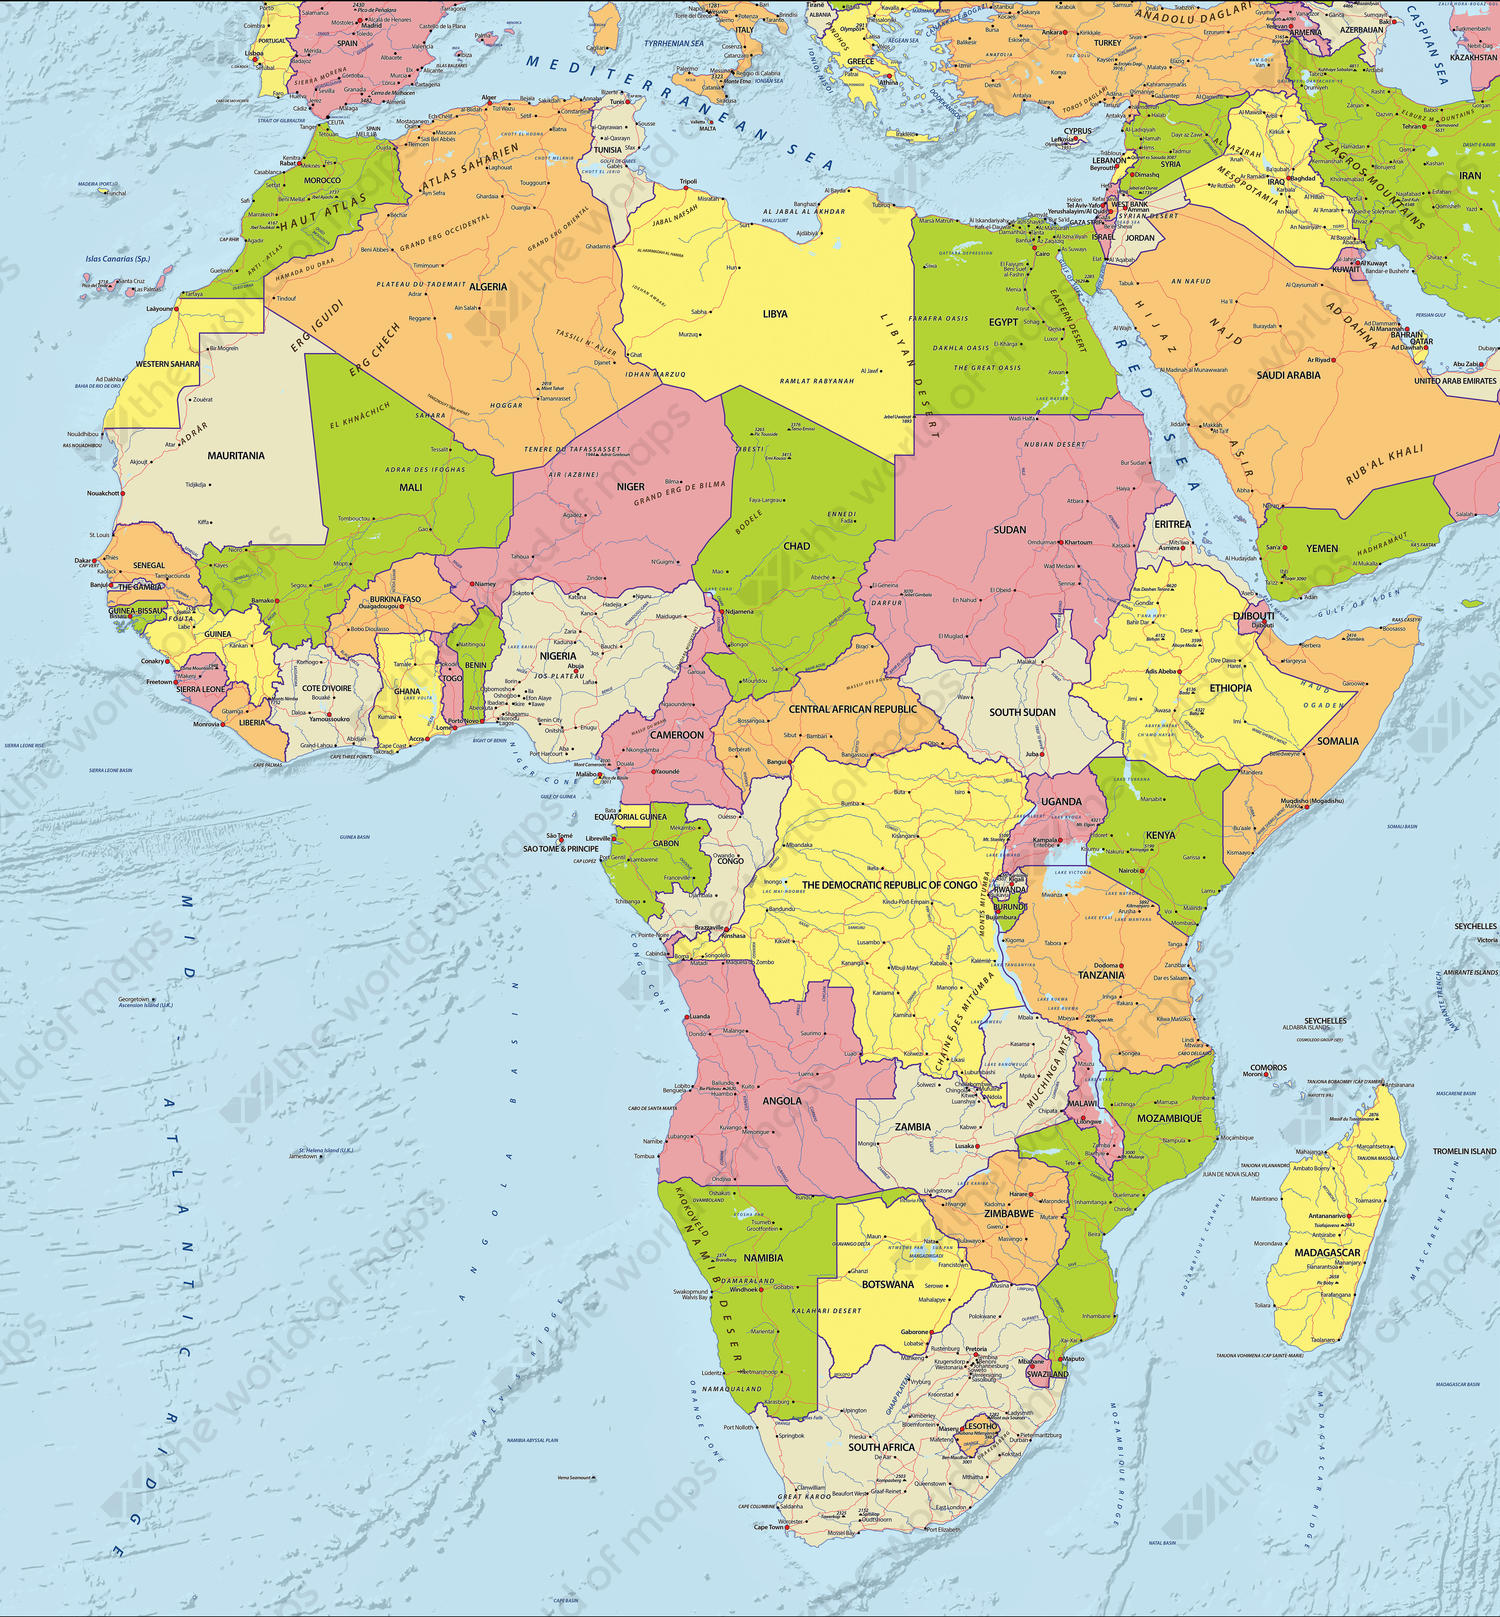 Digital Political Map Africa 627 | The World of Maps.com